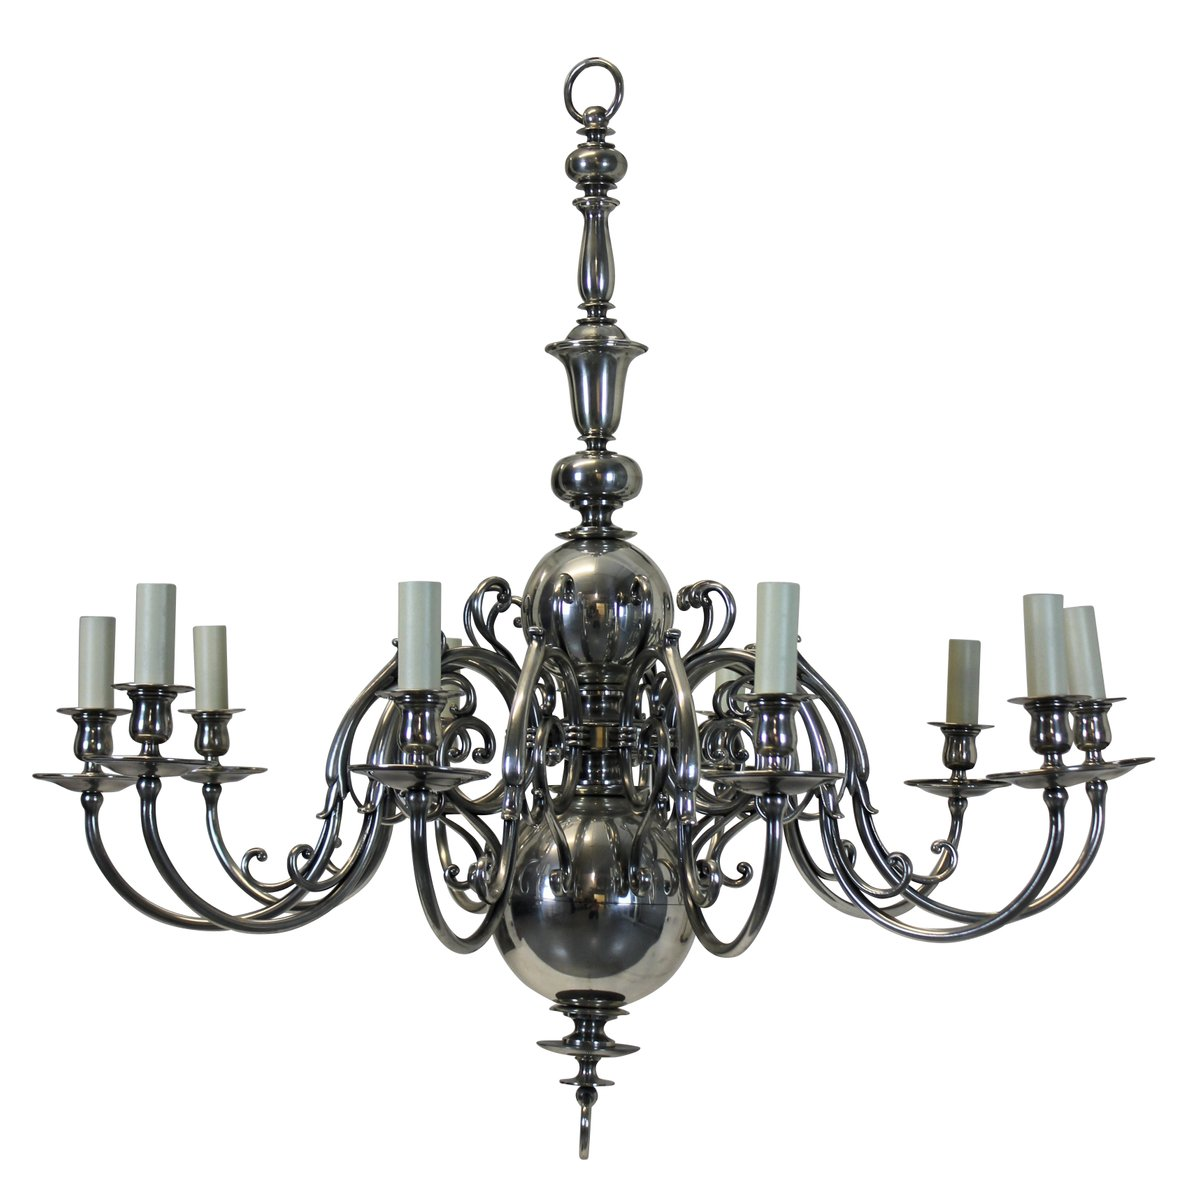 Antique Silver-Plated Chandelier - Antique Silver-Plated Chandelier For Sale At Pamono